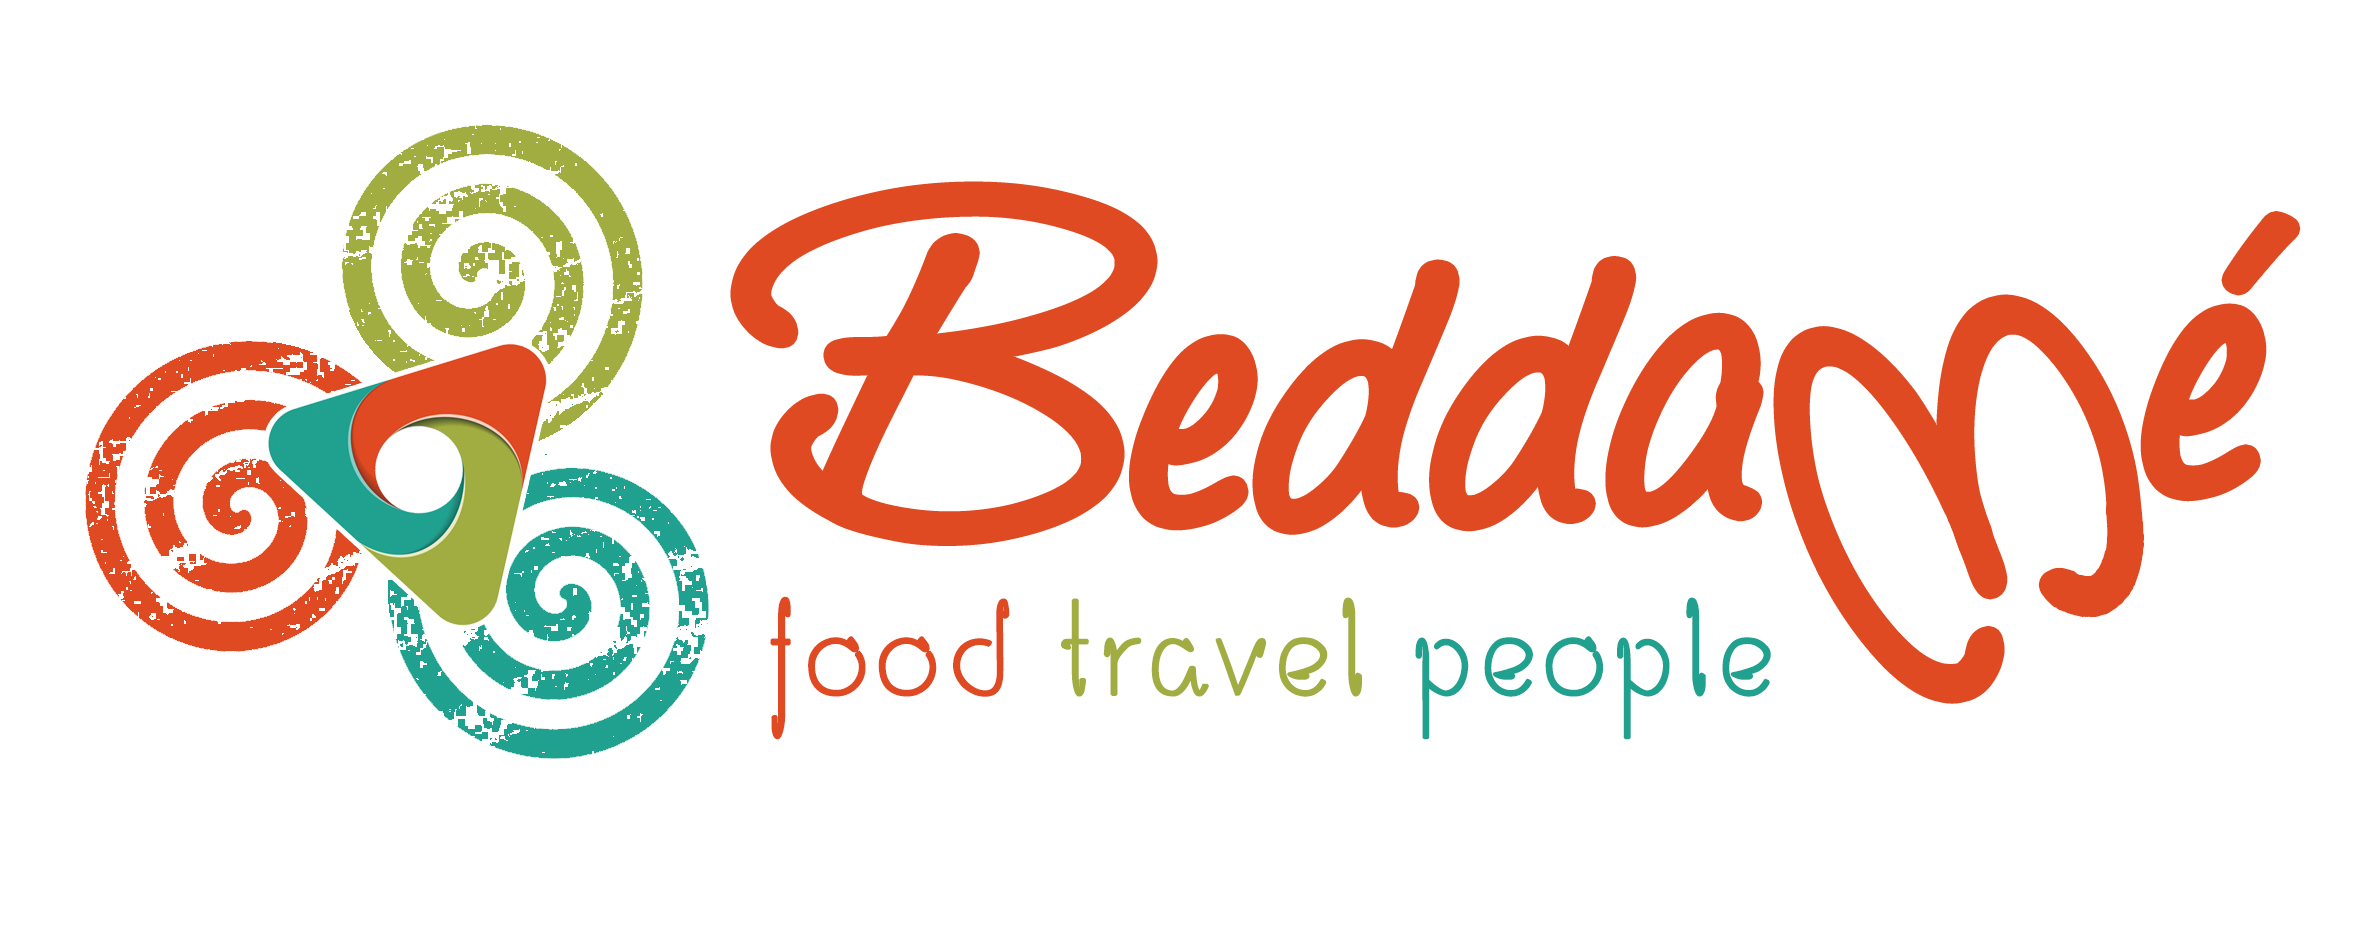 Beddamé – Food Travel People | Sicily Concept Space